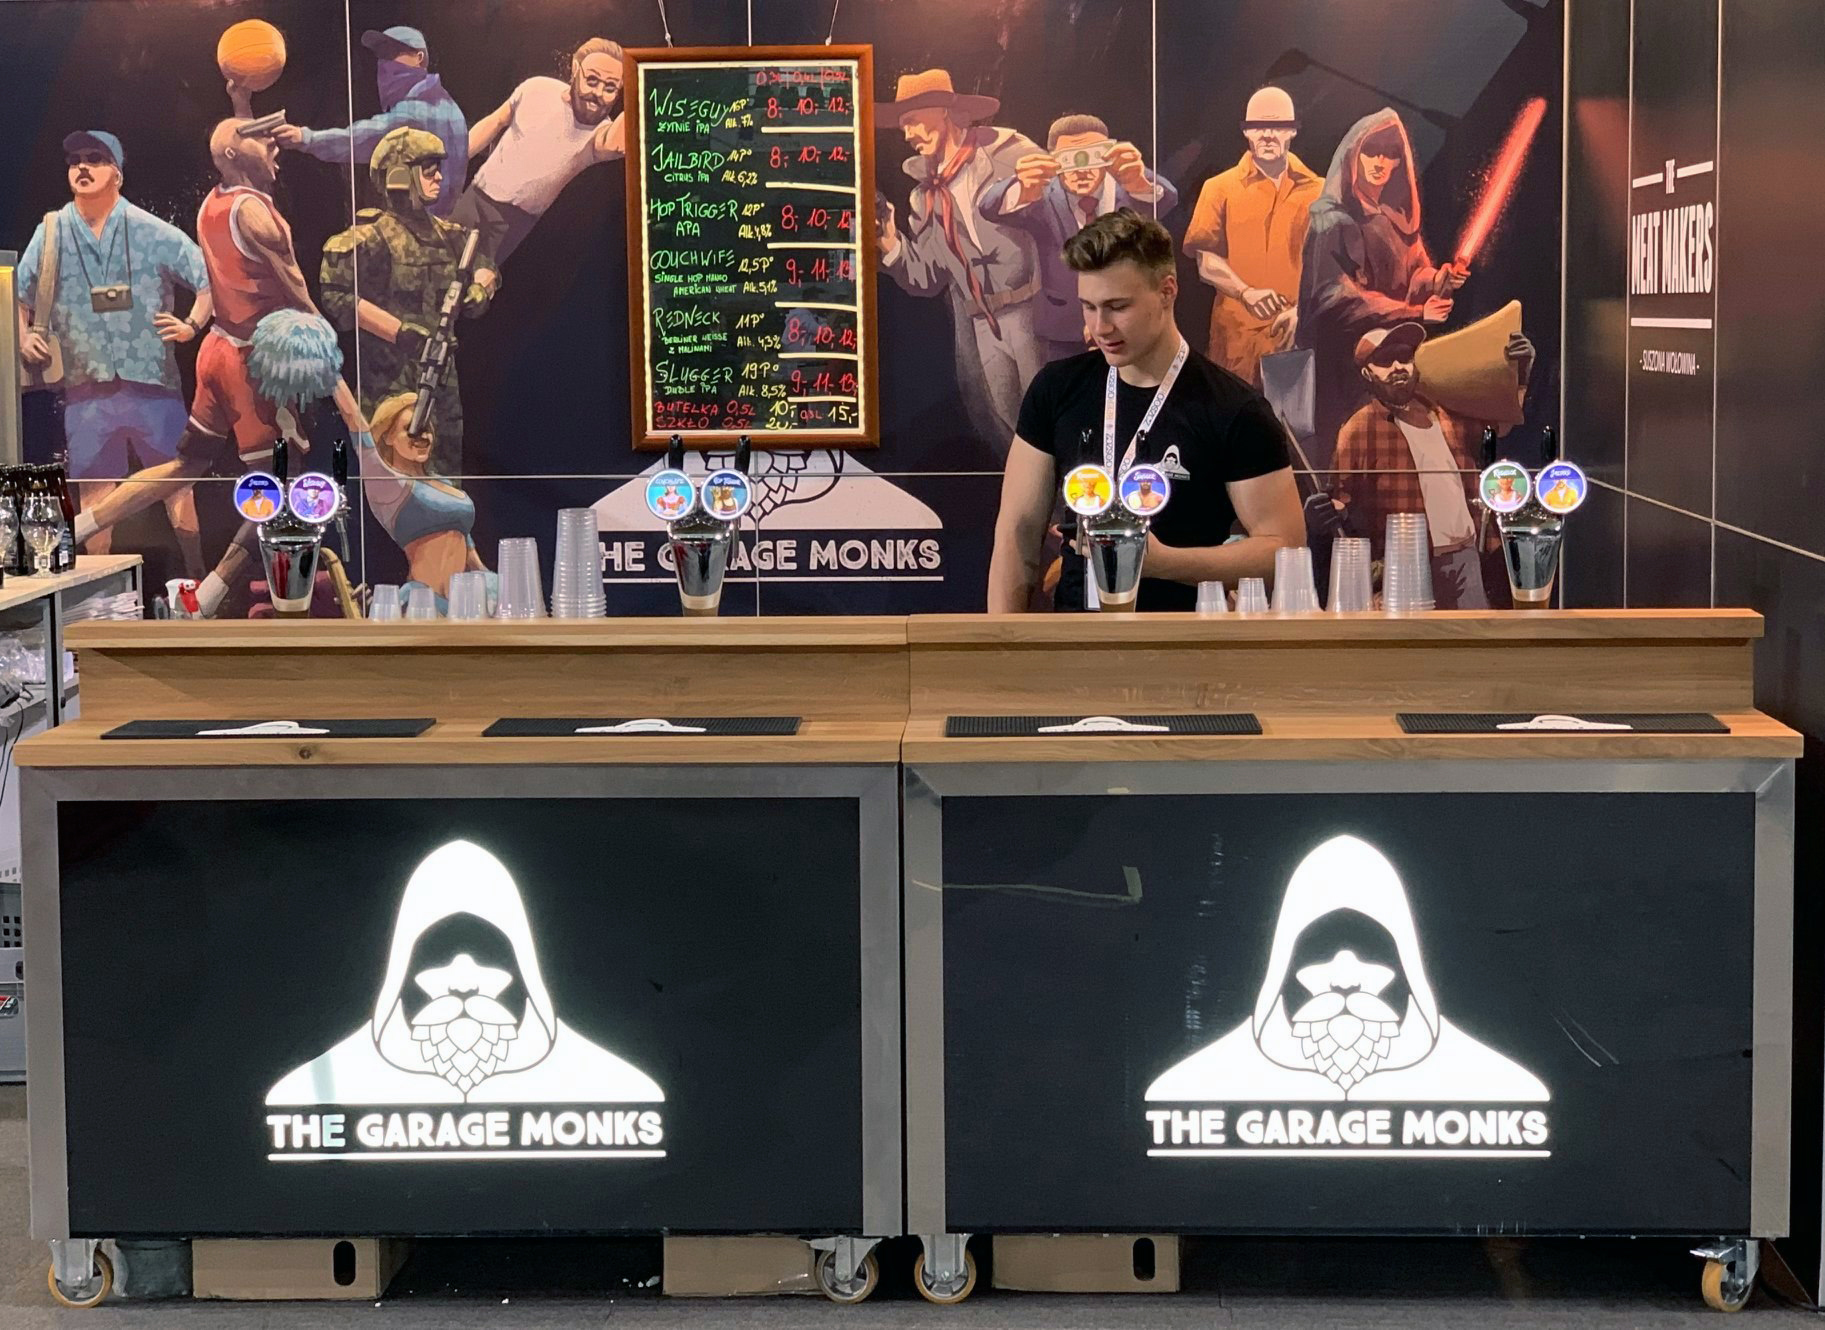 The Garage Monks bar photo showing logos and illustration on booth wall by Jakub Cichecki